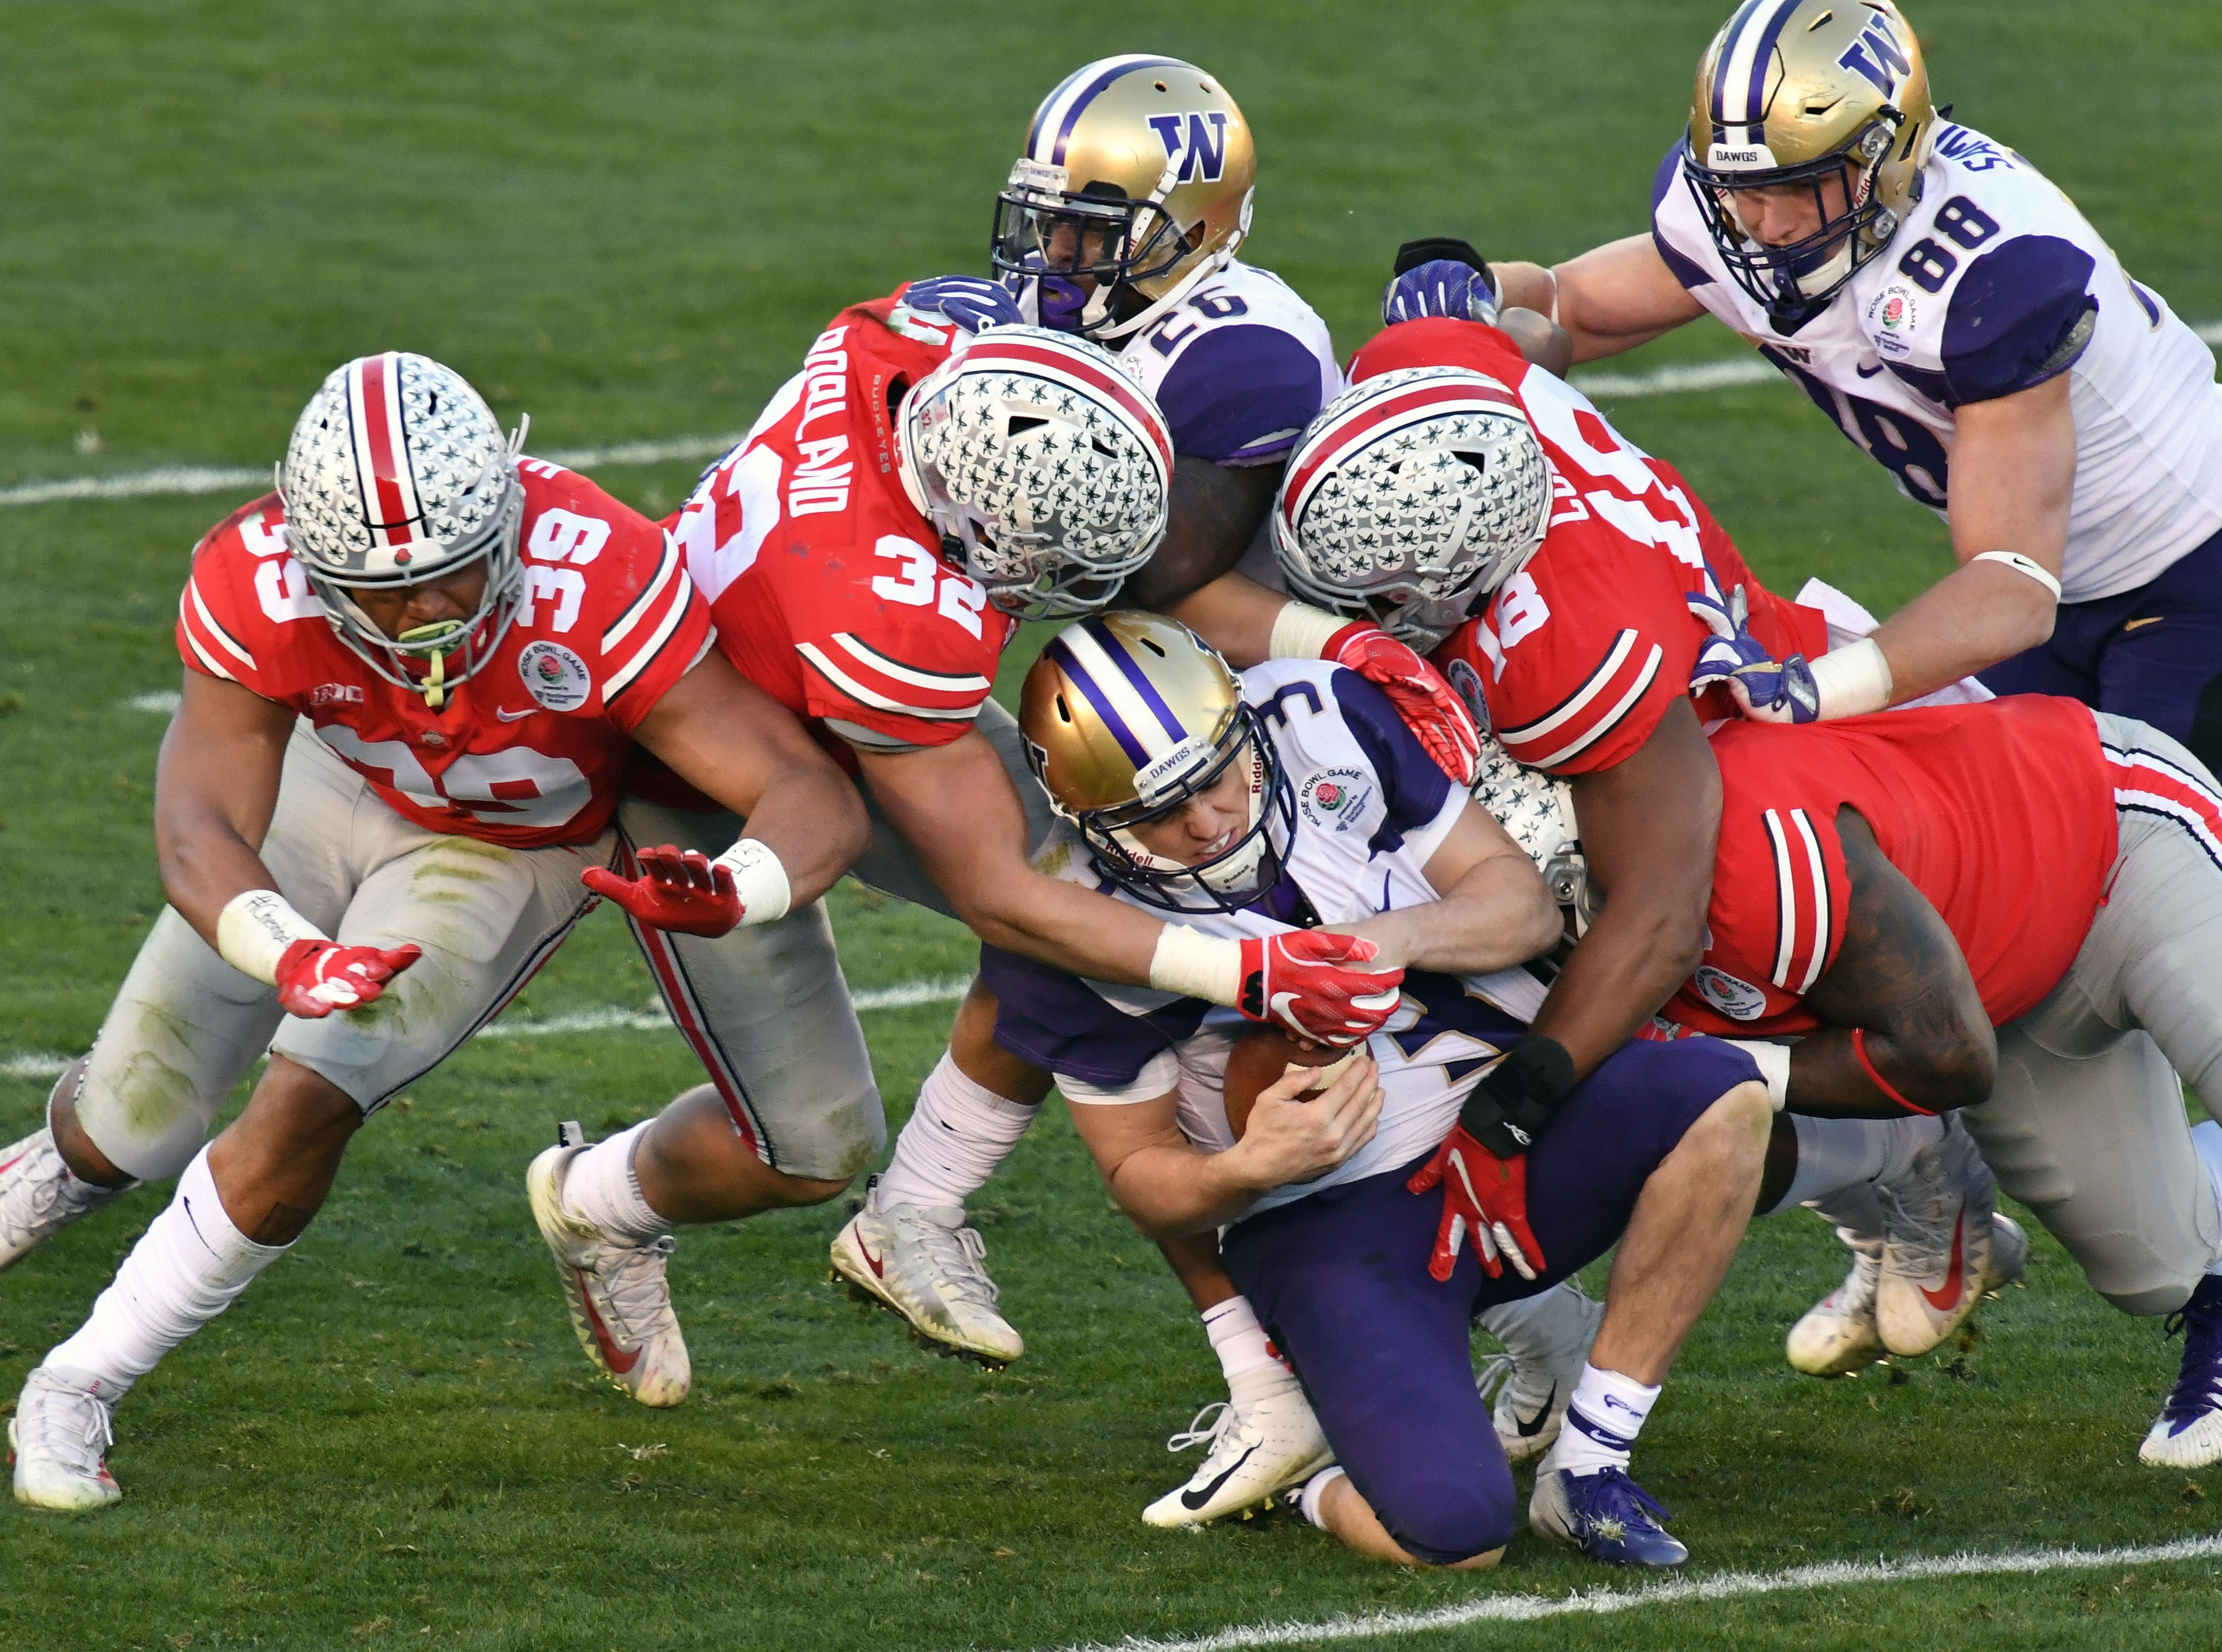 The Ohio State Buckeyes sack Washington Huskies quarterback Jake Browning (3) in the third quarter in the Rose Bowl.